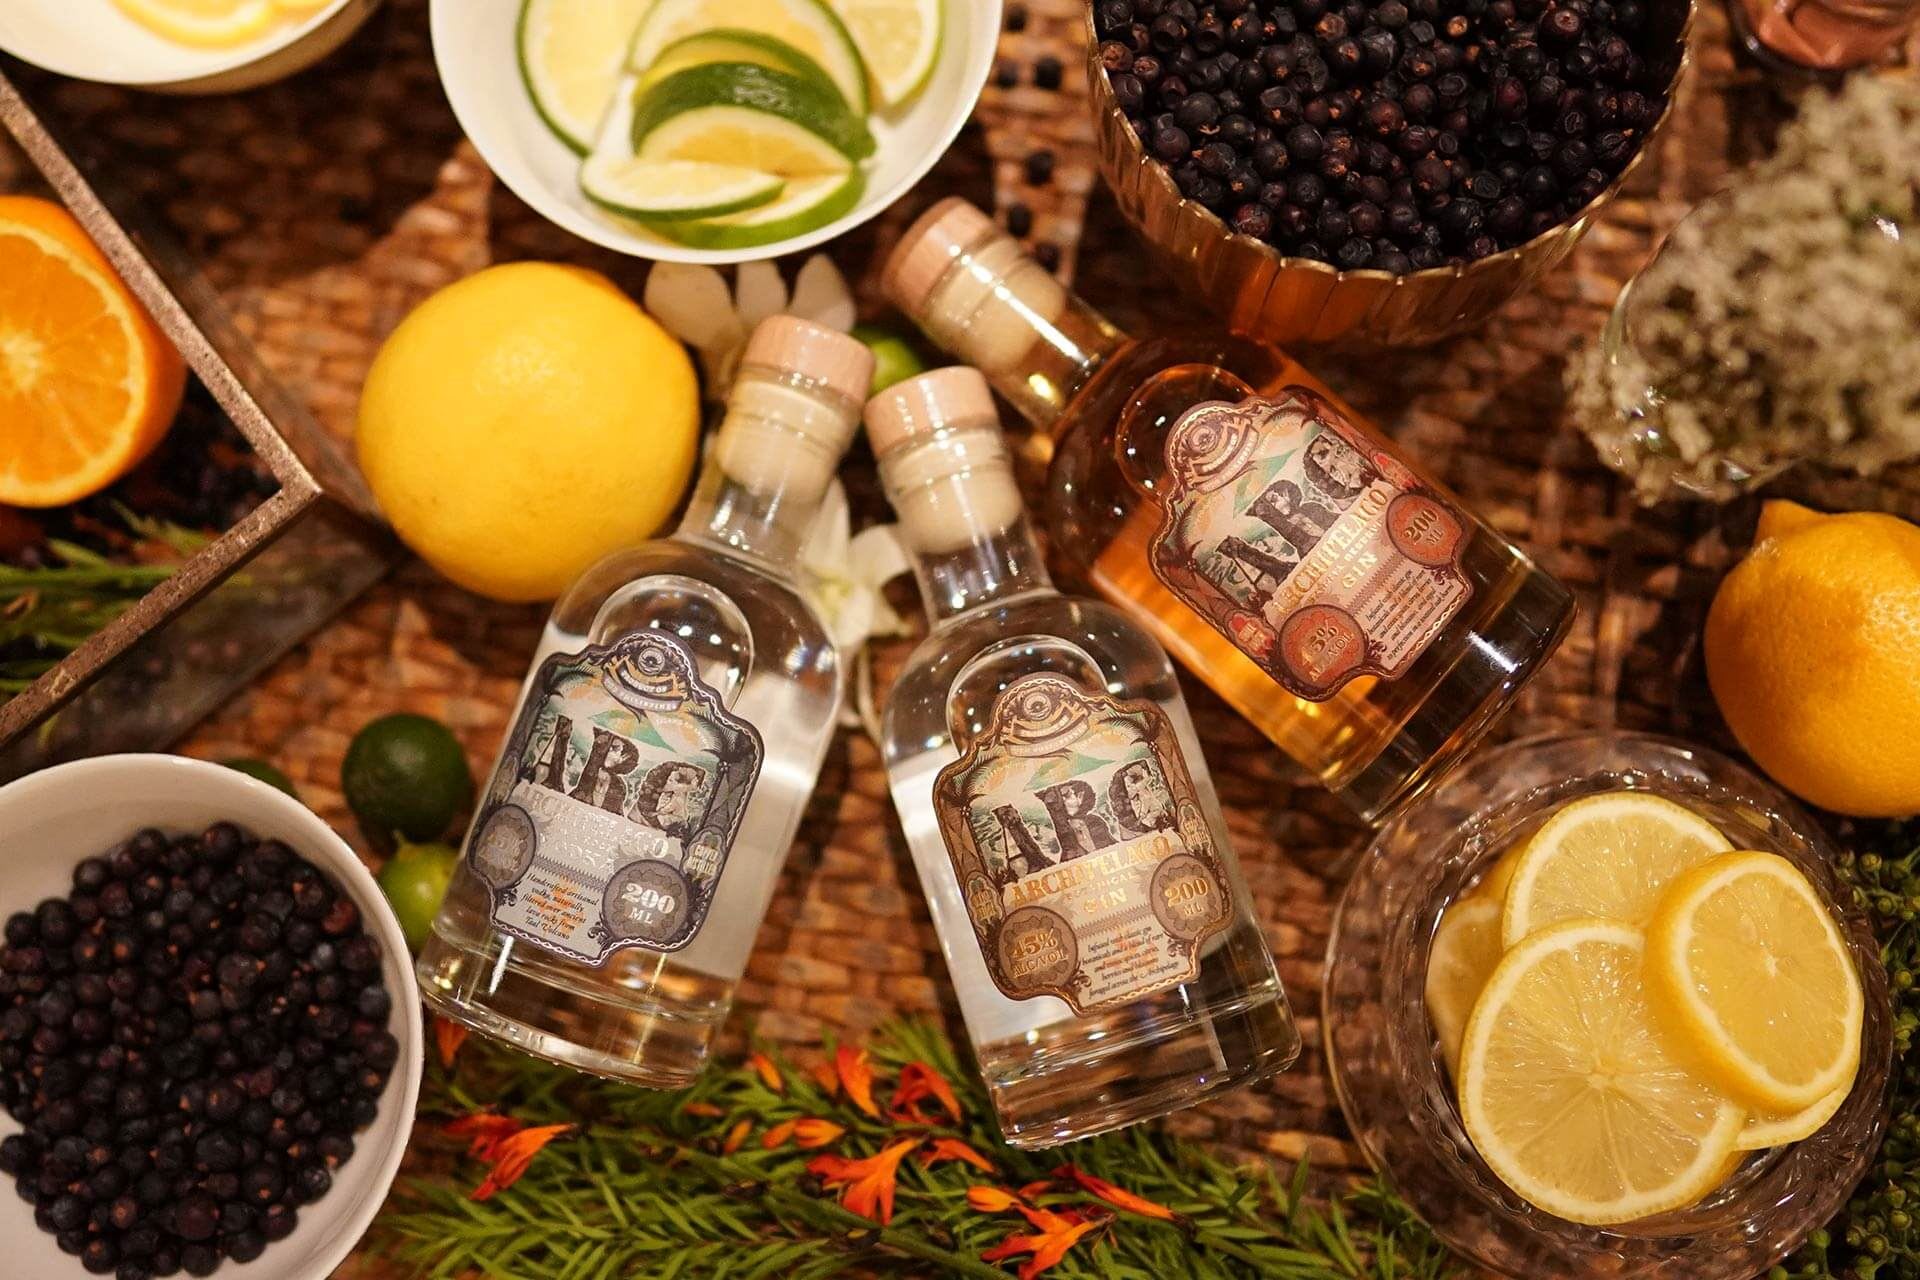 ARC Artisanal Craft spirits made by Full Circle Craft Distillers: ARC Lava Rock Vodka, ARC Botanical Gin, and ARC Barrel Reserve Gin (all in 200mL bottles)